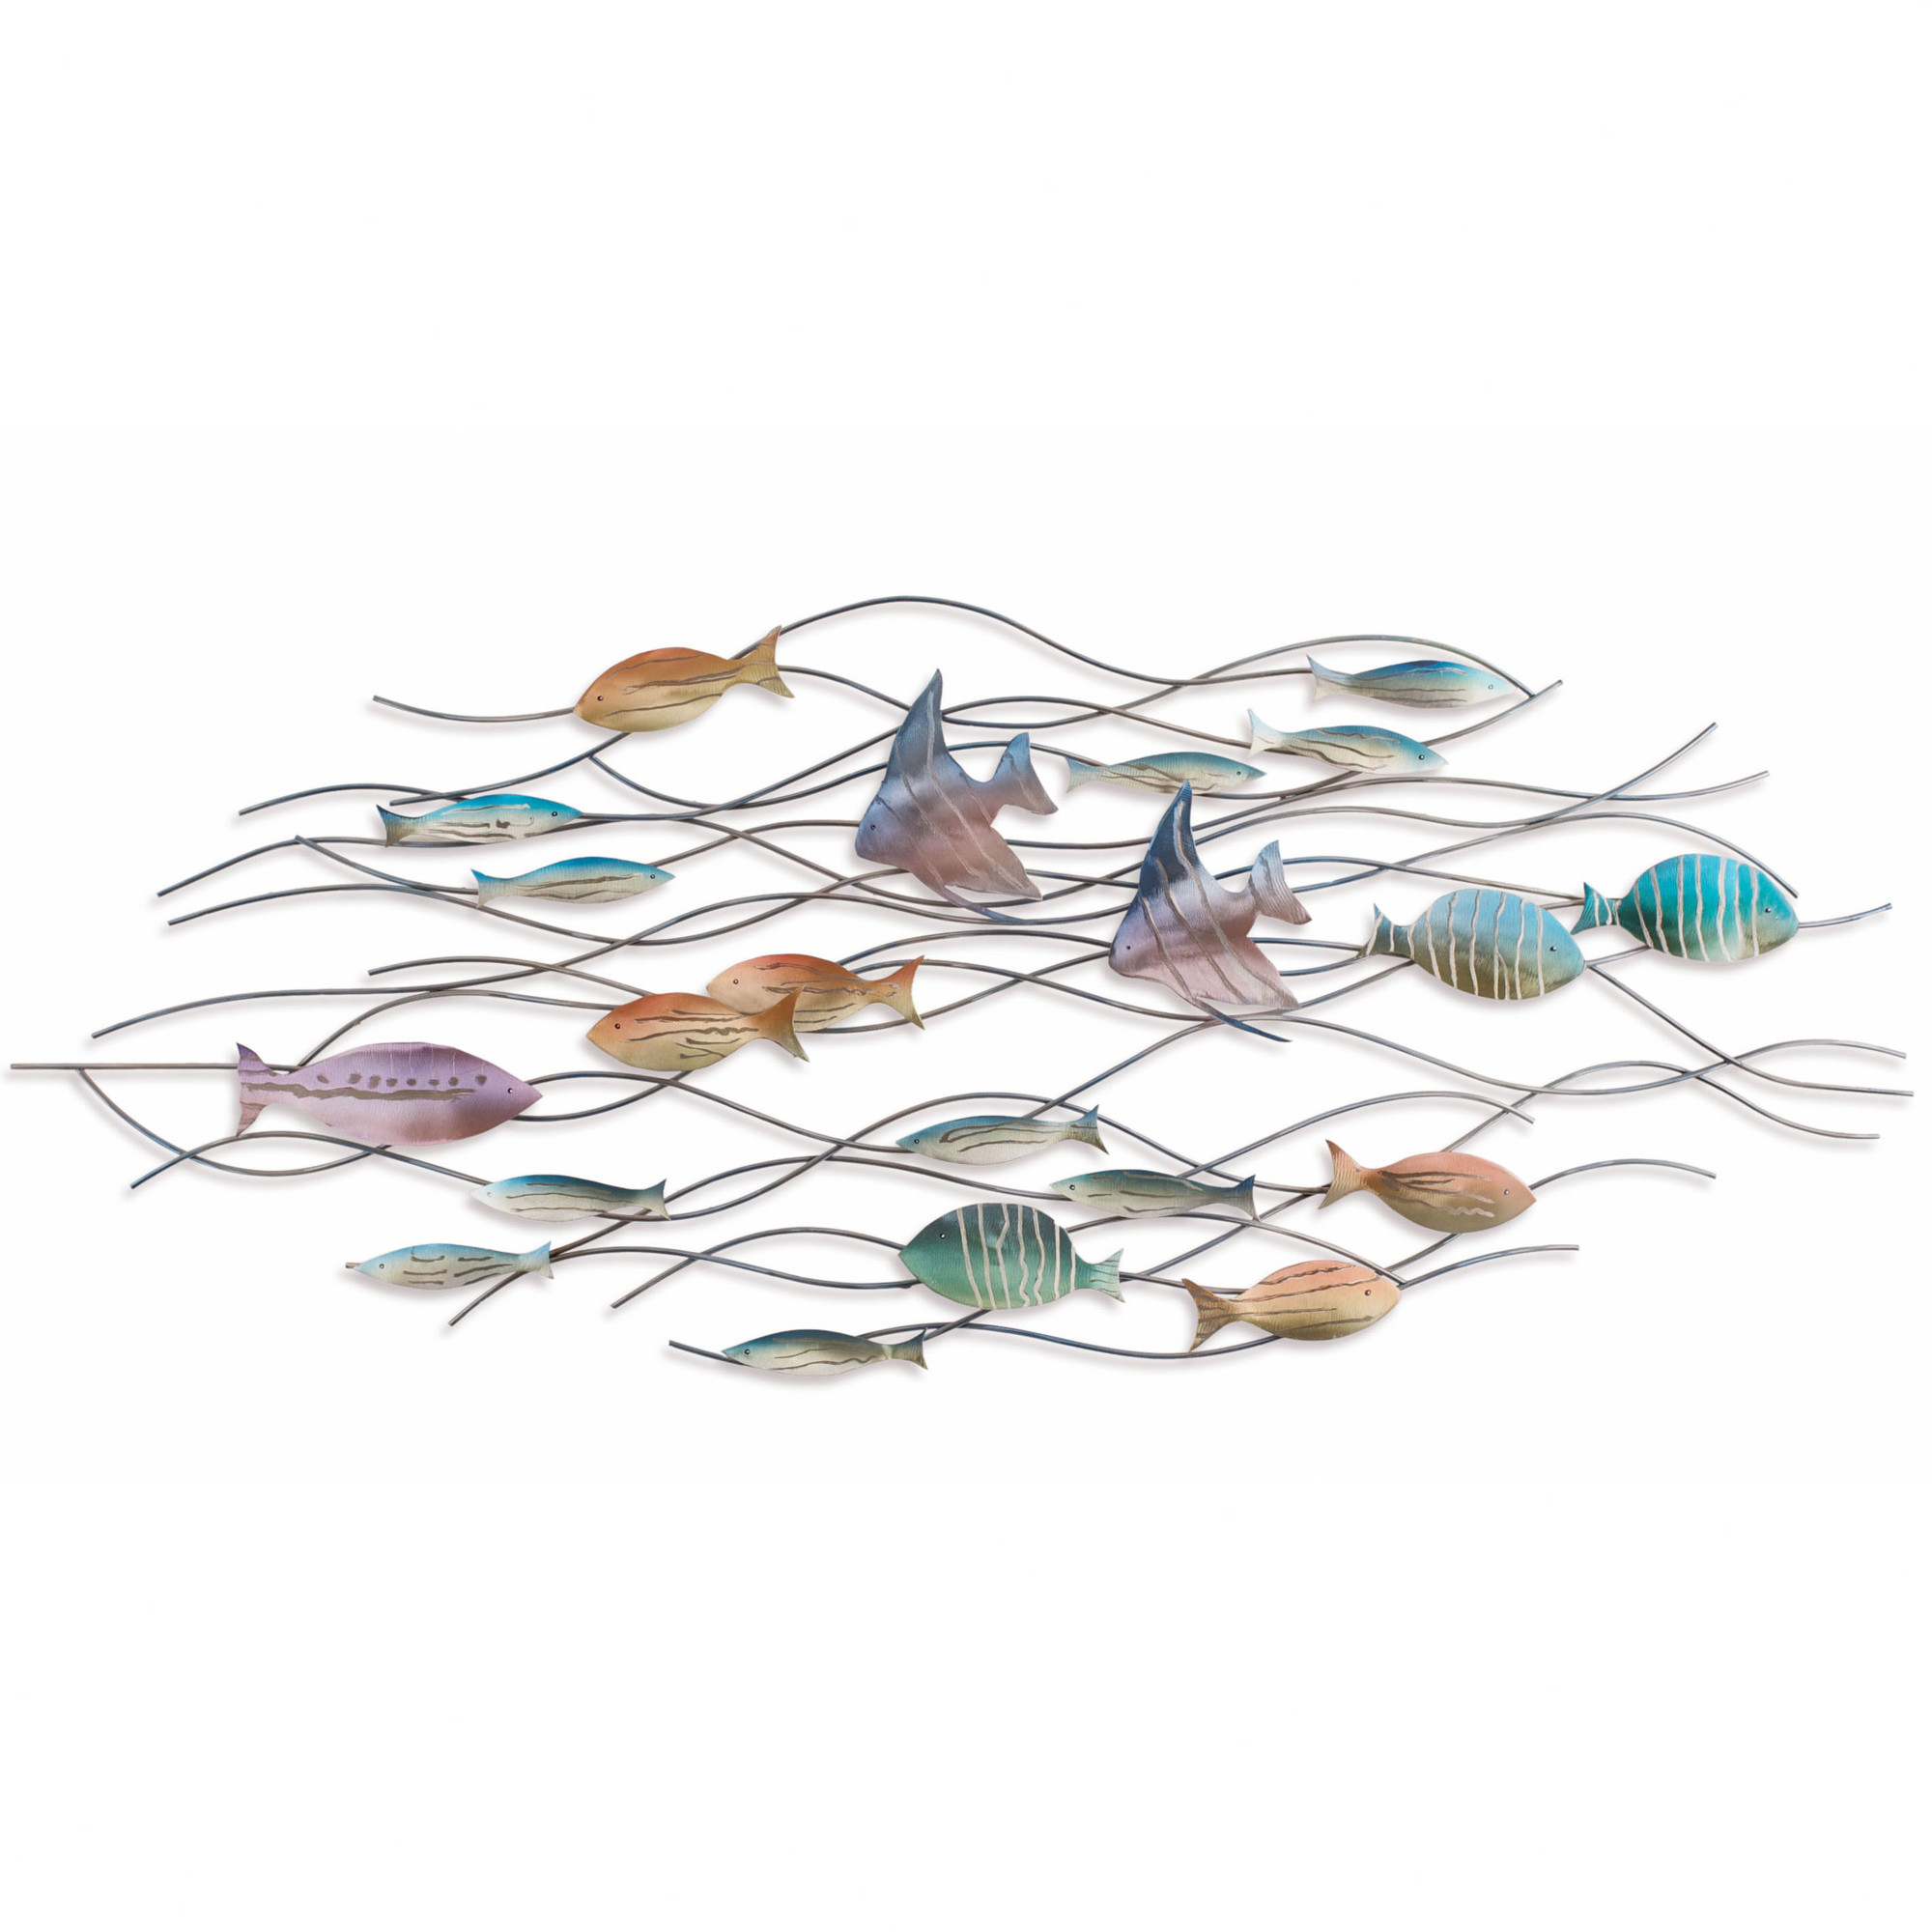 Large School Of Tropical Fish - Nautical Metal Wall Art in Favorite Coastal Metal Fish Wall Decor